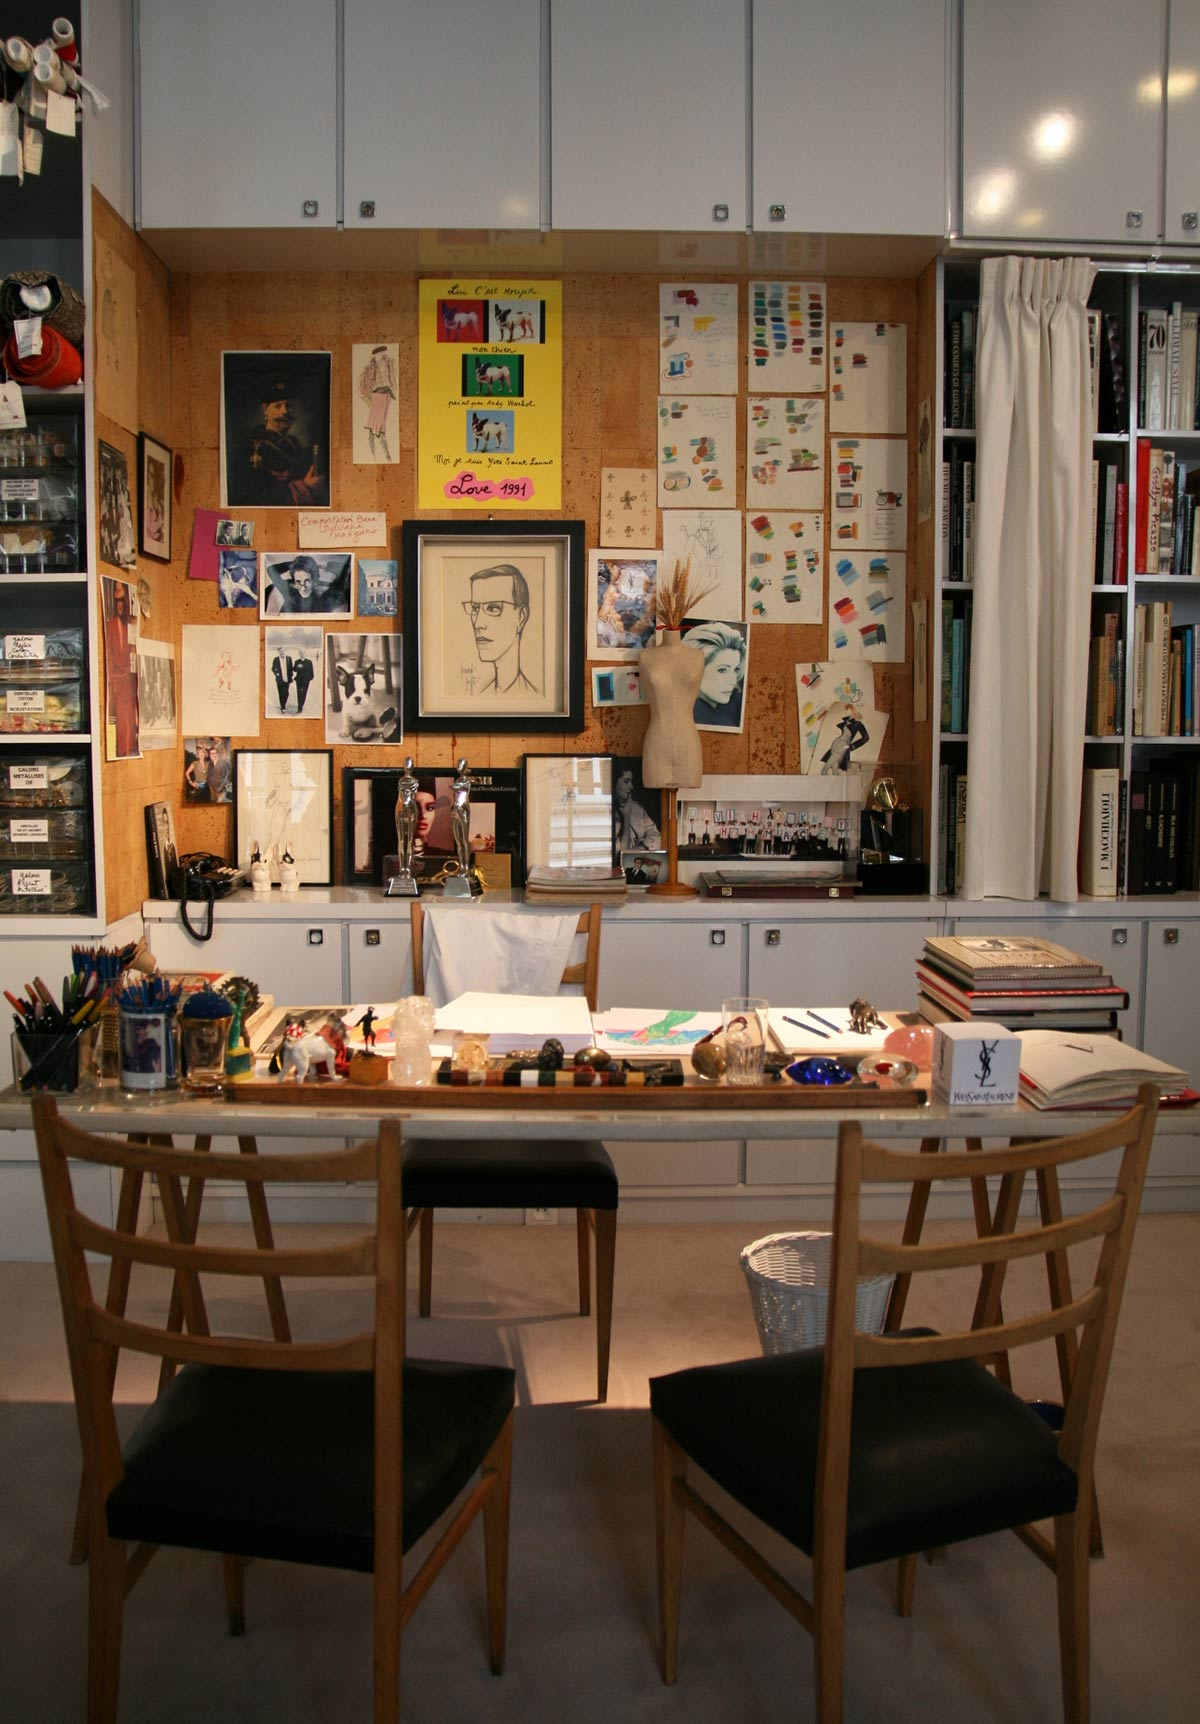 Yves Saint Laurent's Studio